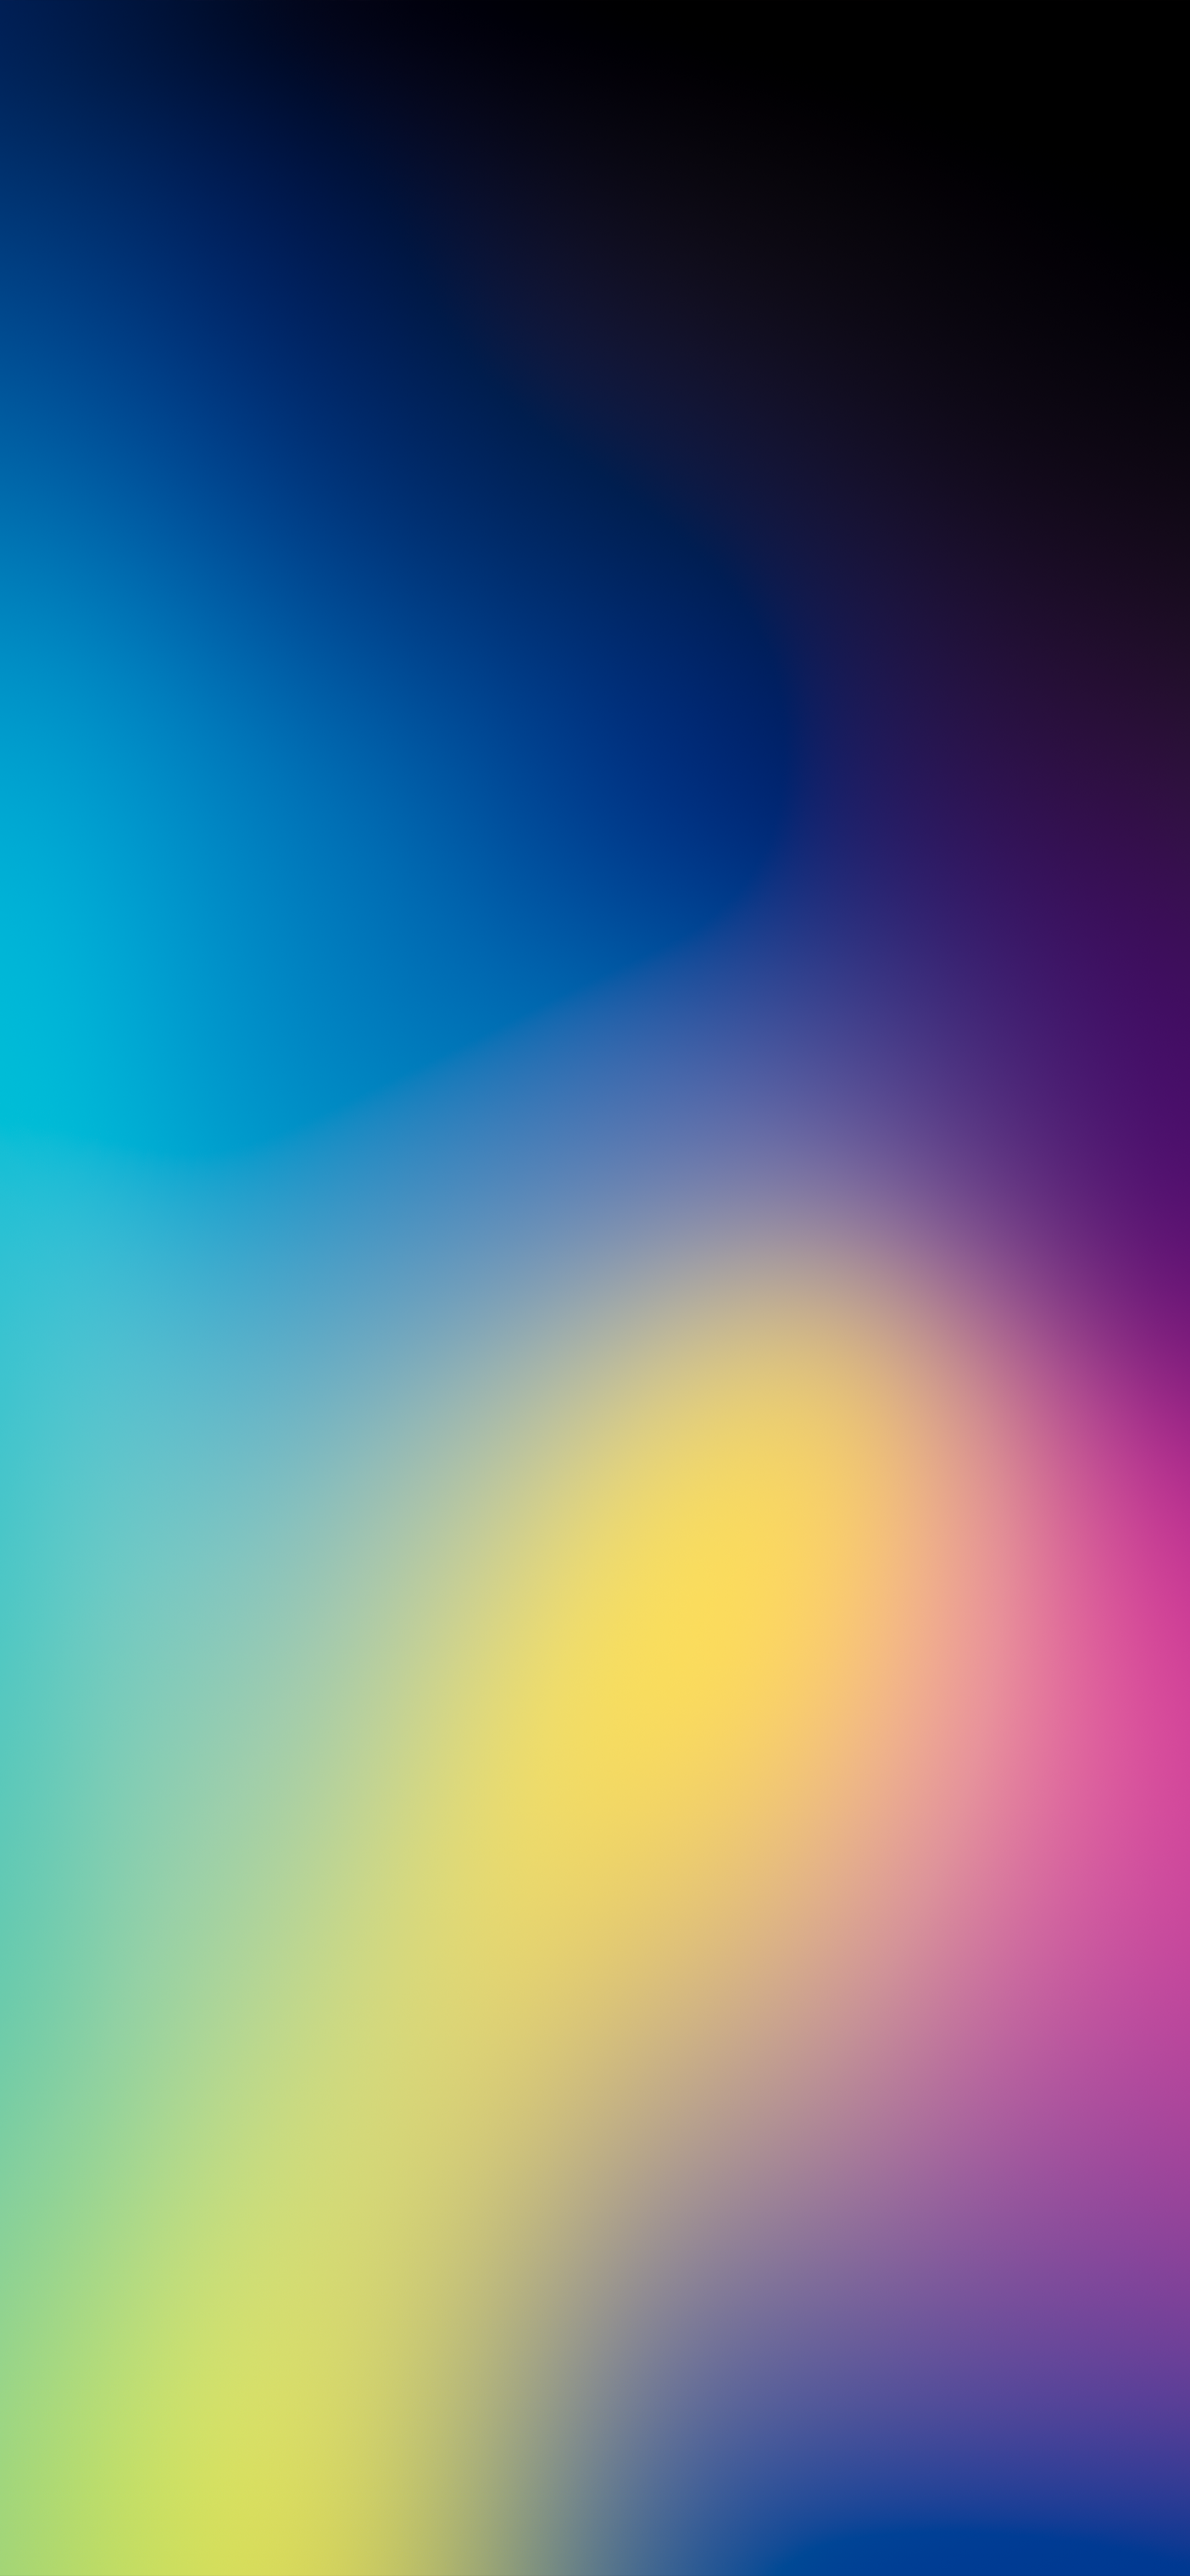 Style Gradient By Hk3ton In 2021 Color Wallpaper Iphone Pretty Wallpapers Minimalist Wallpaper